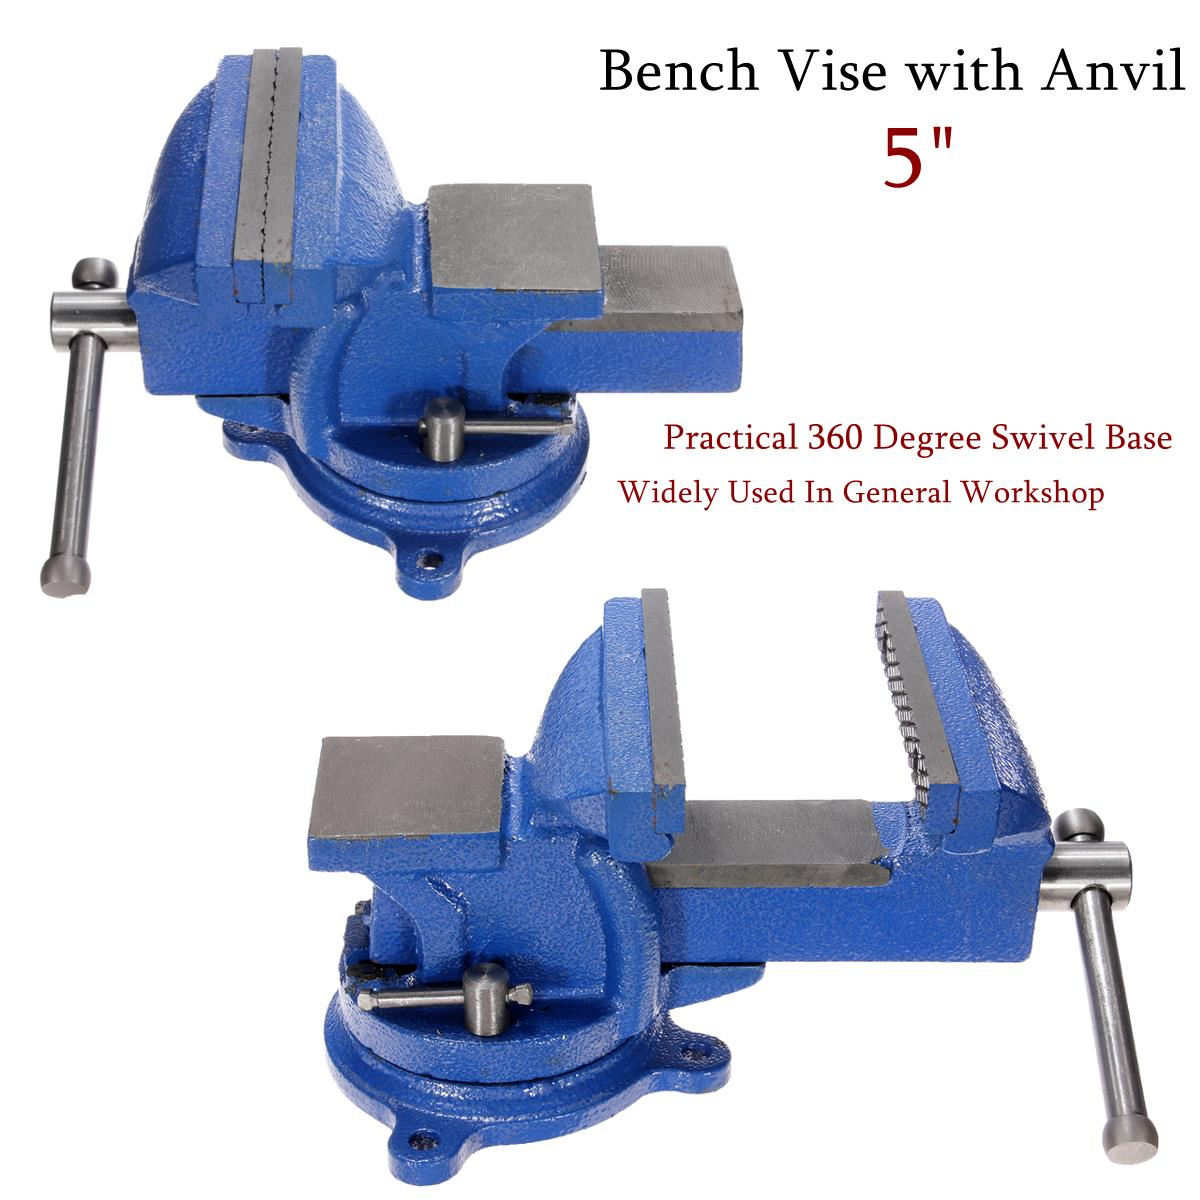 5 Inch Bench Vise with Anvil Swivel Locking Base Table Top Clamp Heavy Duty Steel